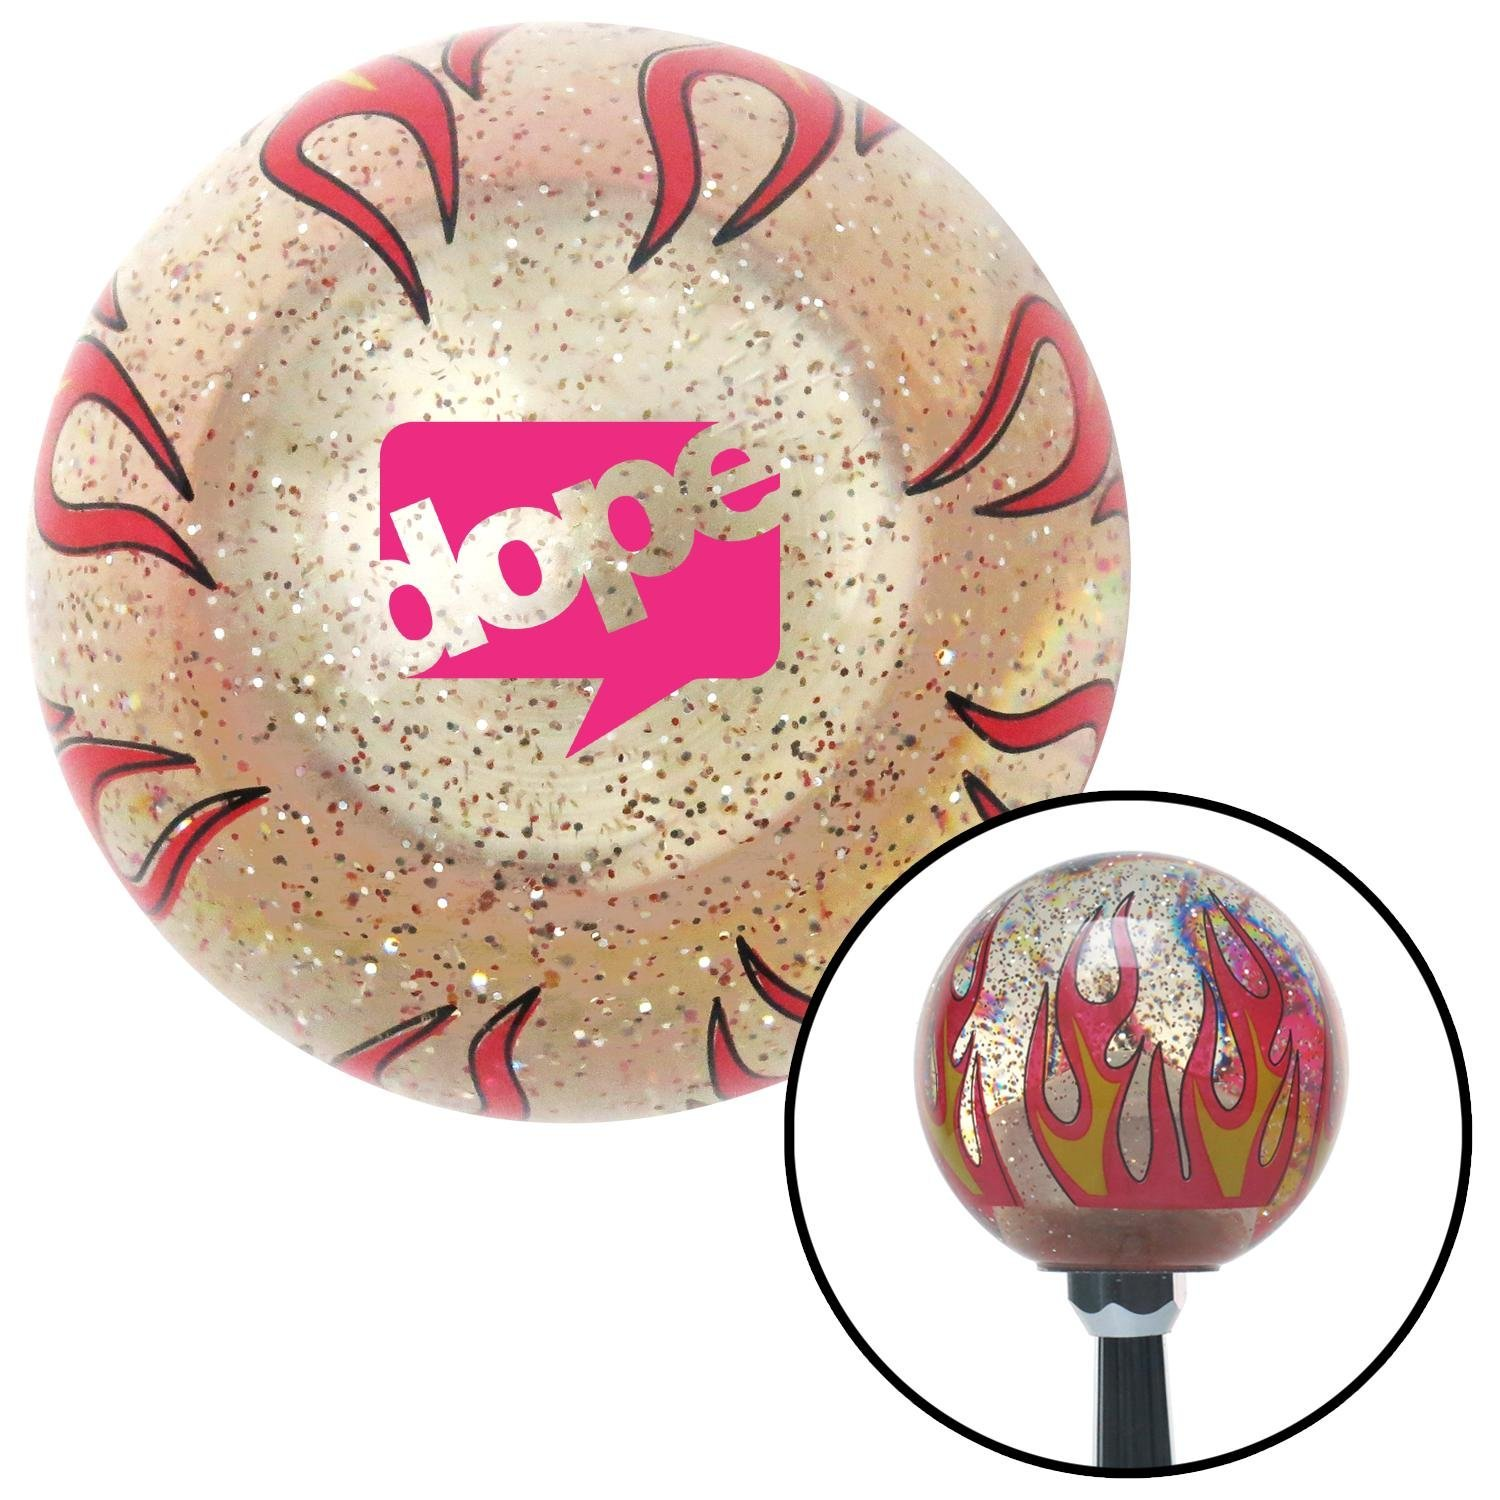 American Shifter 296193 Shift Knob Pink Dope Bubble Clear Flame Metal Flake with M16 x 1.5 Insert